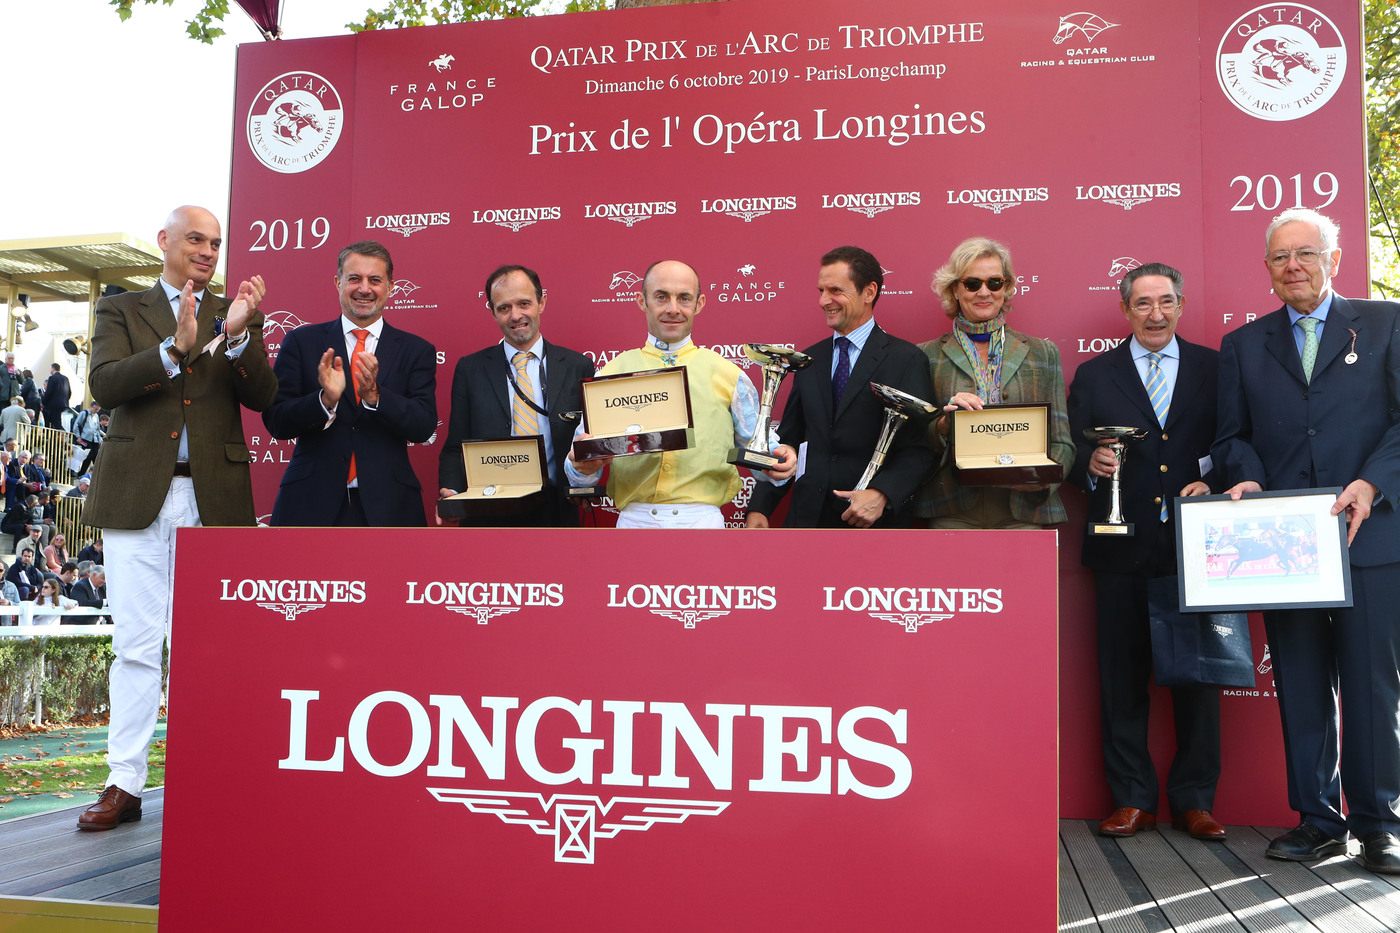 Longines Flat Racing Event: Waldgeist wins the 98th edition of the Qatar Prix de l'Arc de Triomphe 7